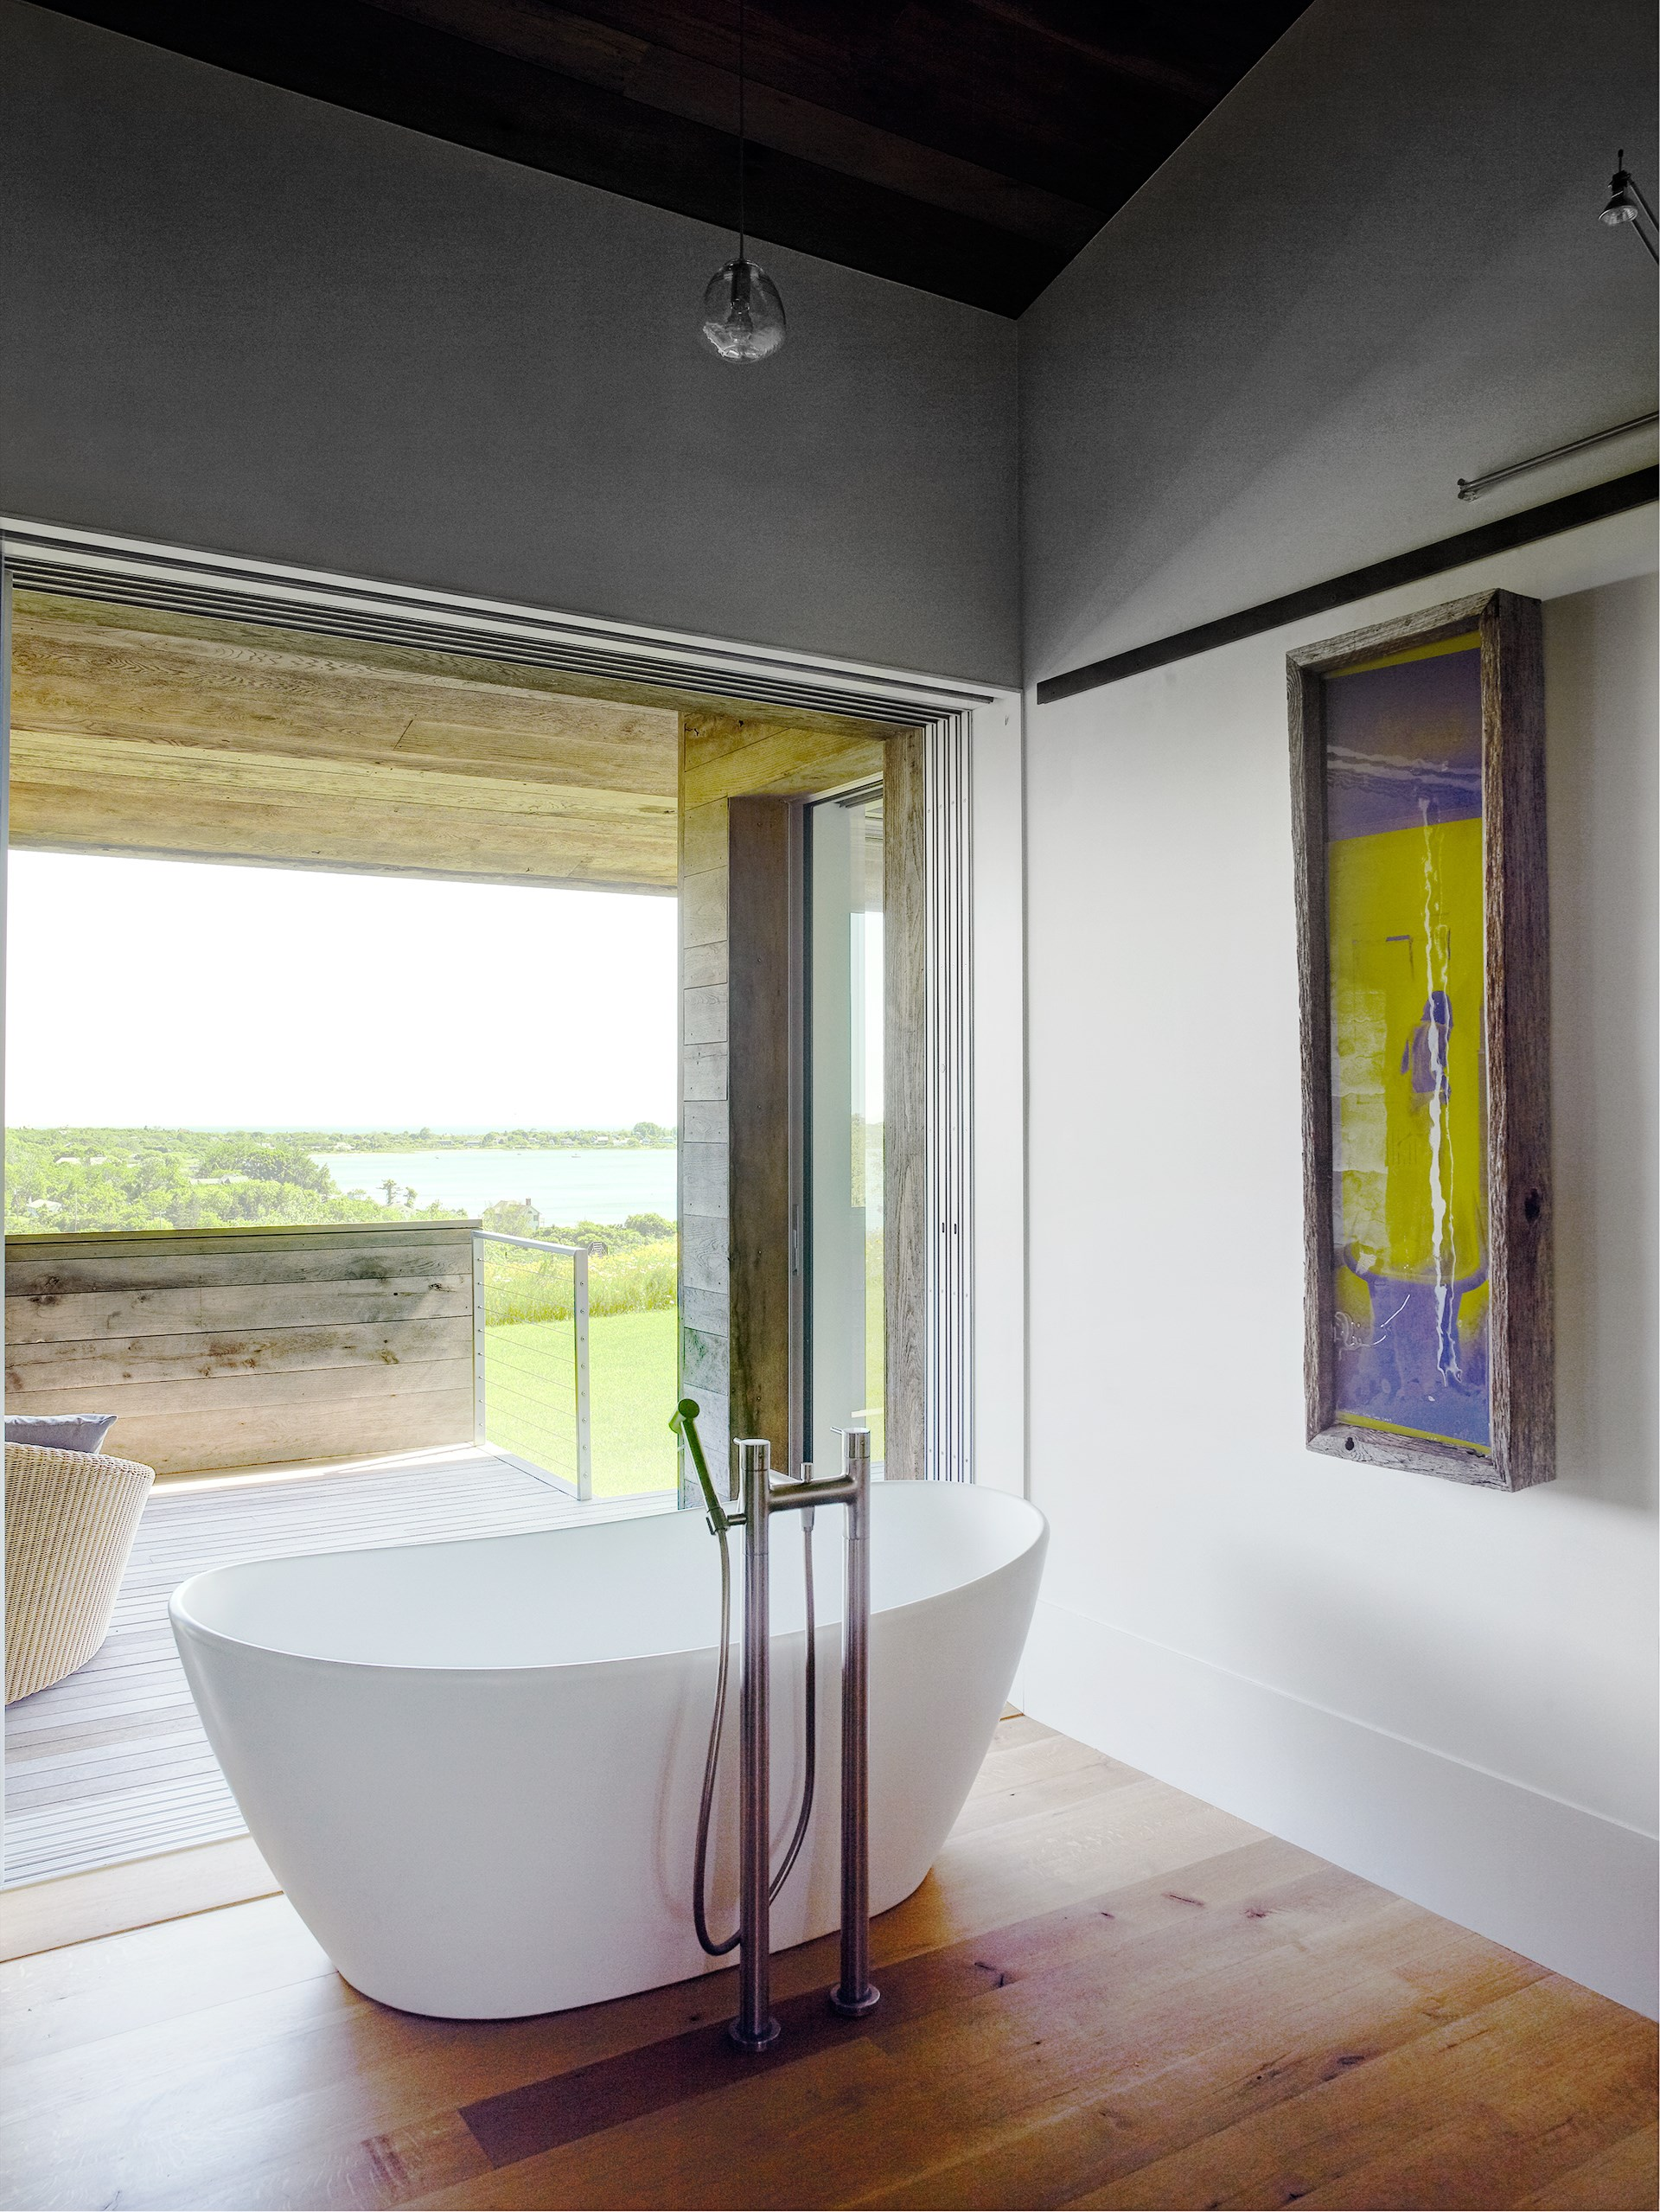 """A freestanding bath is always made better with a view, as is the case with this stunning master ensuite in a [Montauk holiday house](http://www.homestolove.com.au/luxury-montauk-house-by-bates-masi-architects-4473